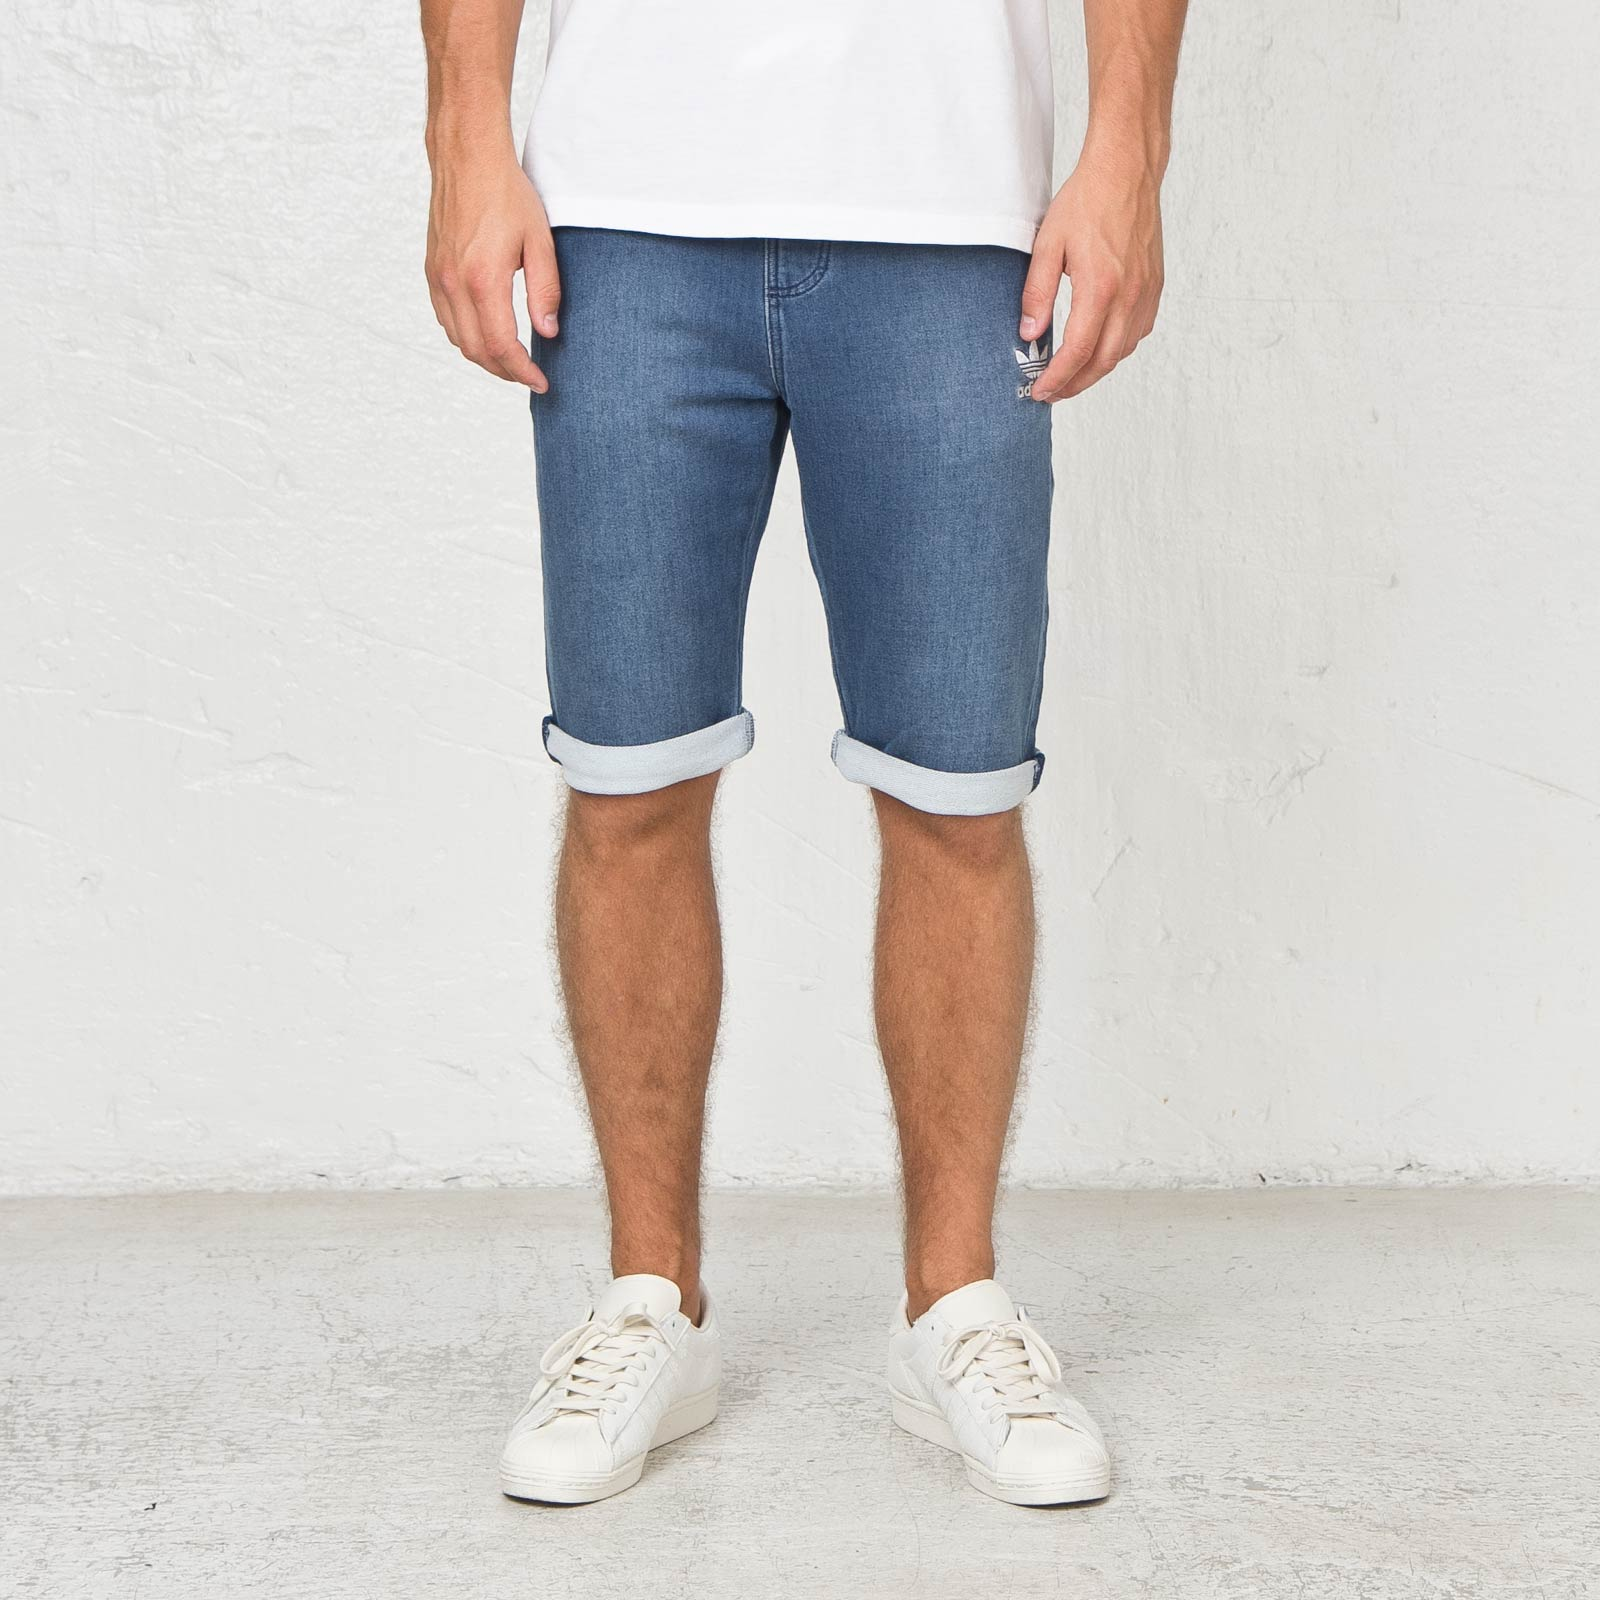 Sneakersnstuff Short Ft Denim Adidas Sneaker S18363 wq7WInAEp